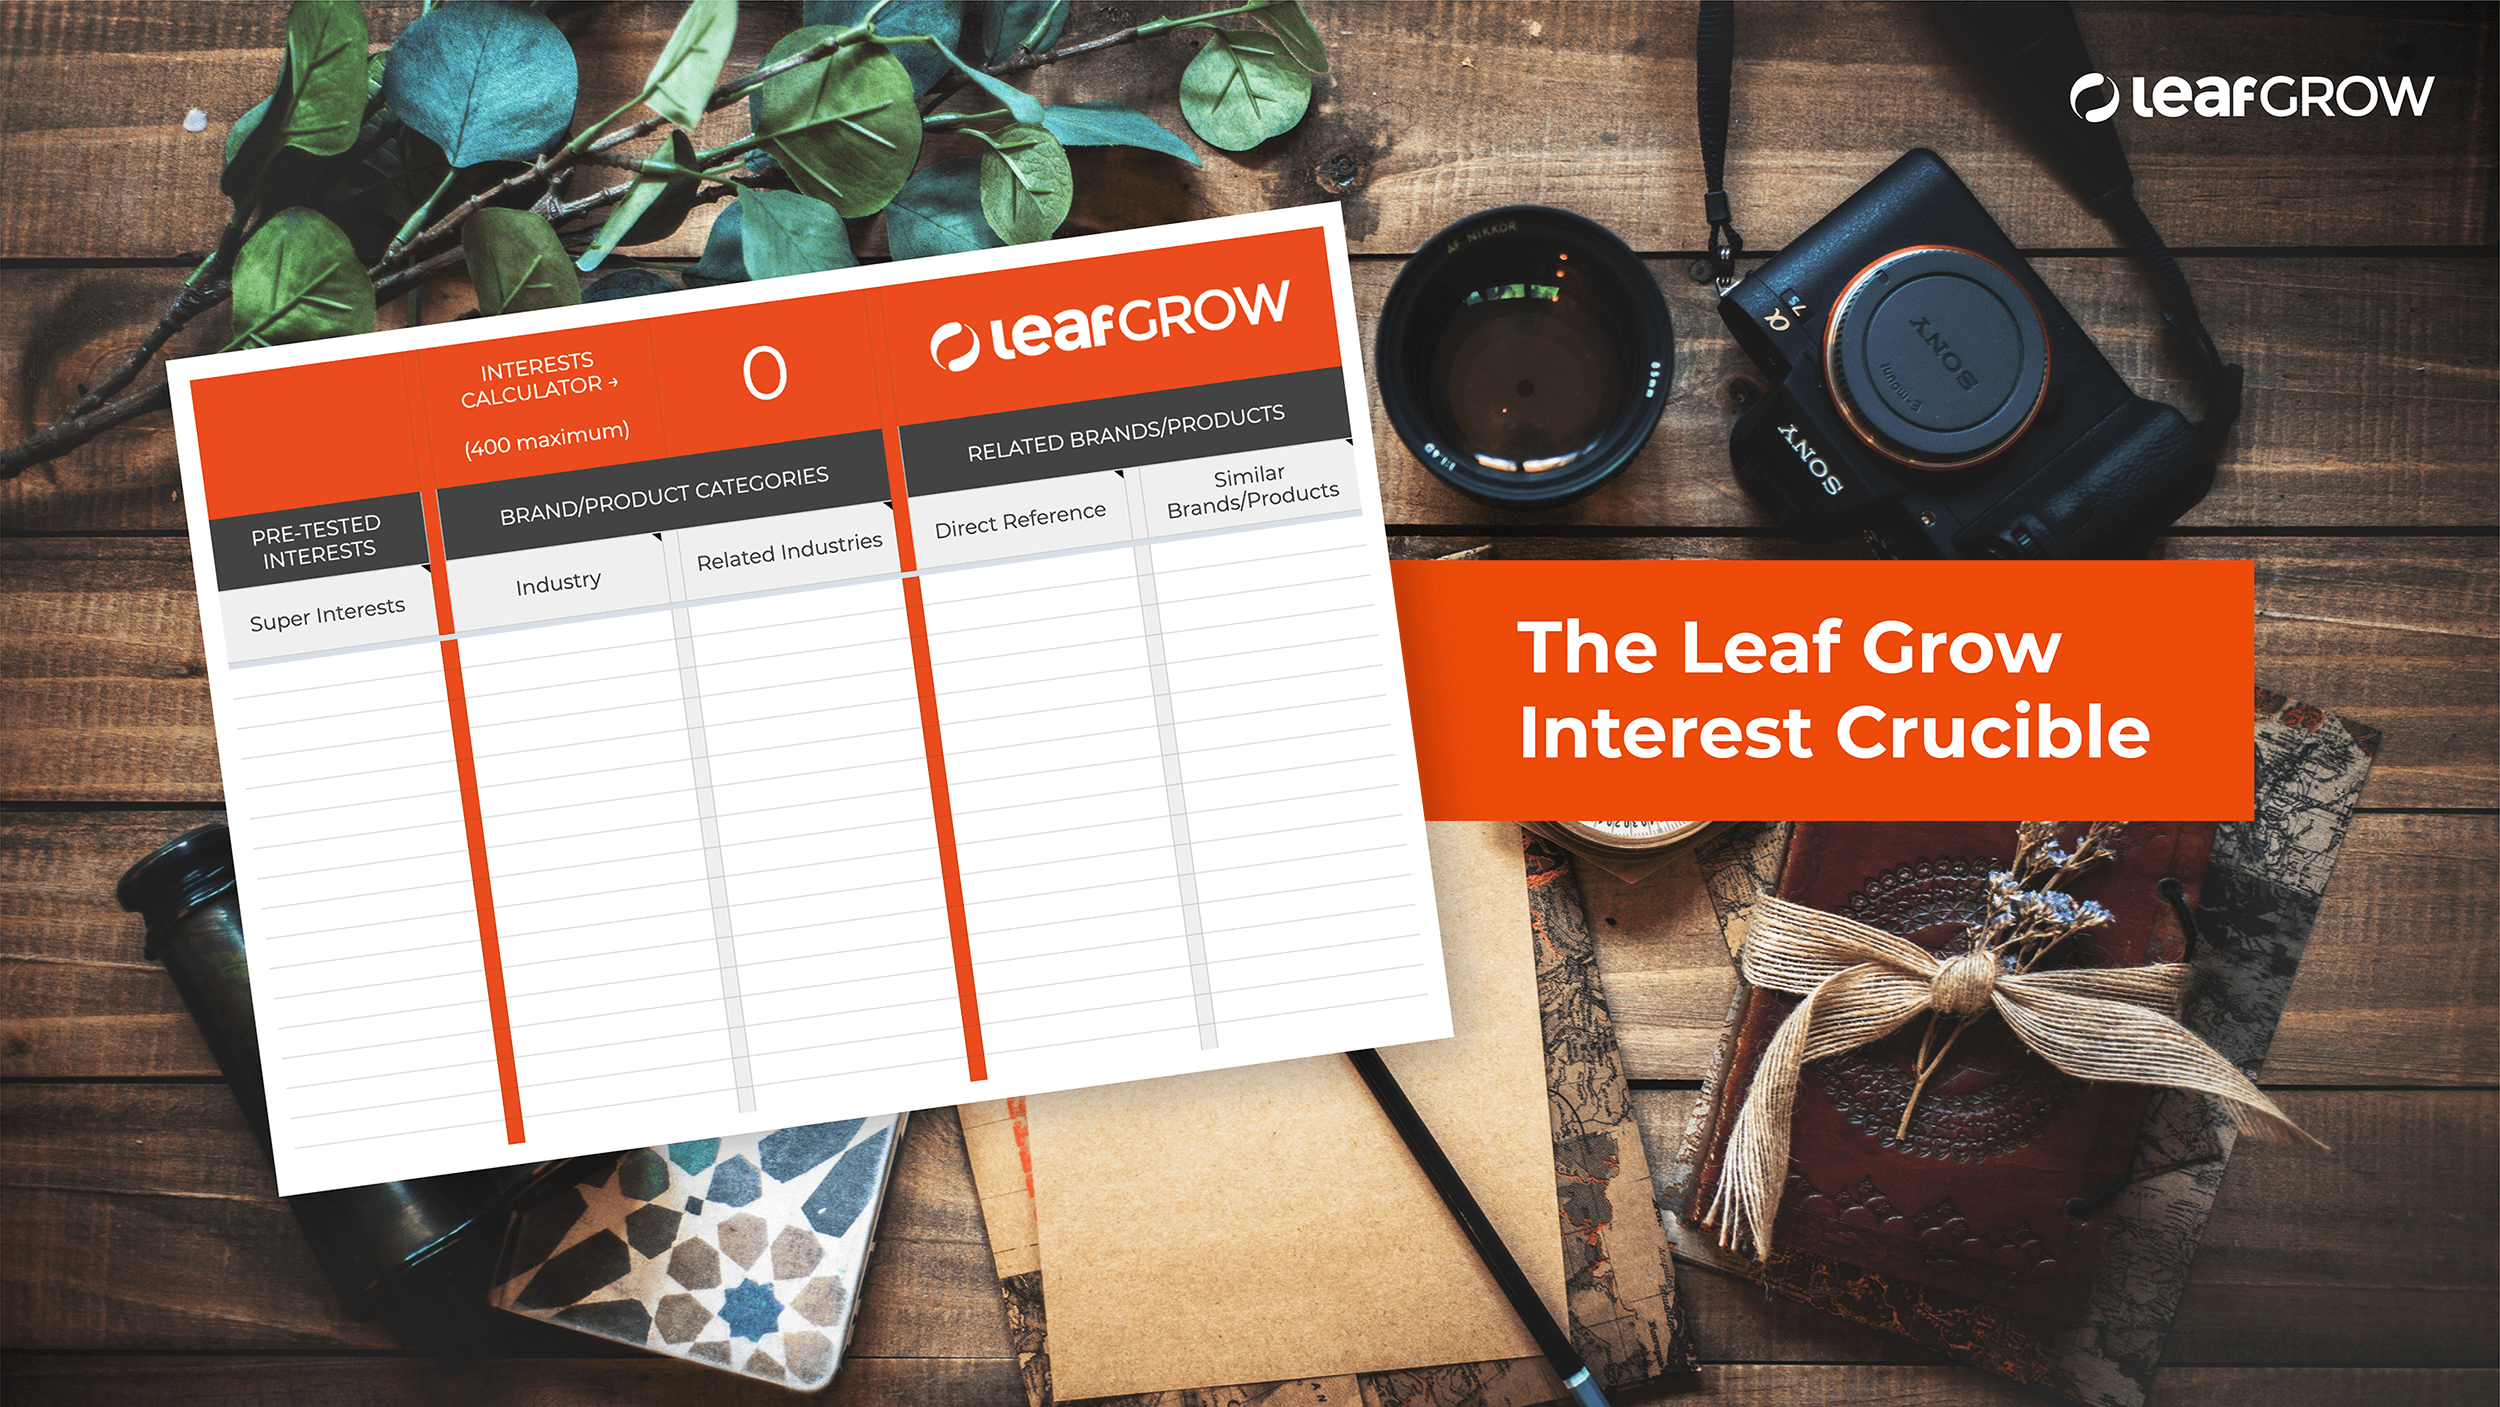 The Leaf Grow Interest Crucible - Laser target the people who'll love your brand.Identify the super interests driving maximum ROAS for your brand, with our interest targeting & performance framework.